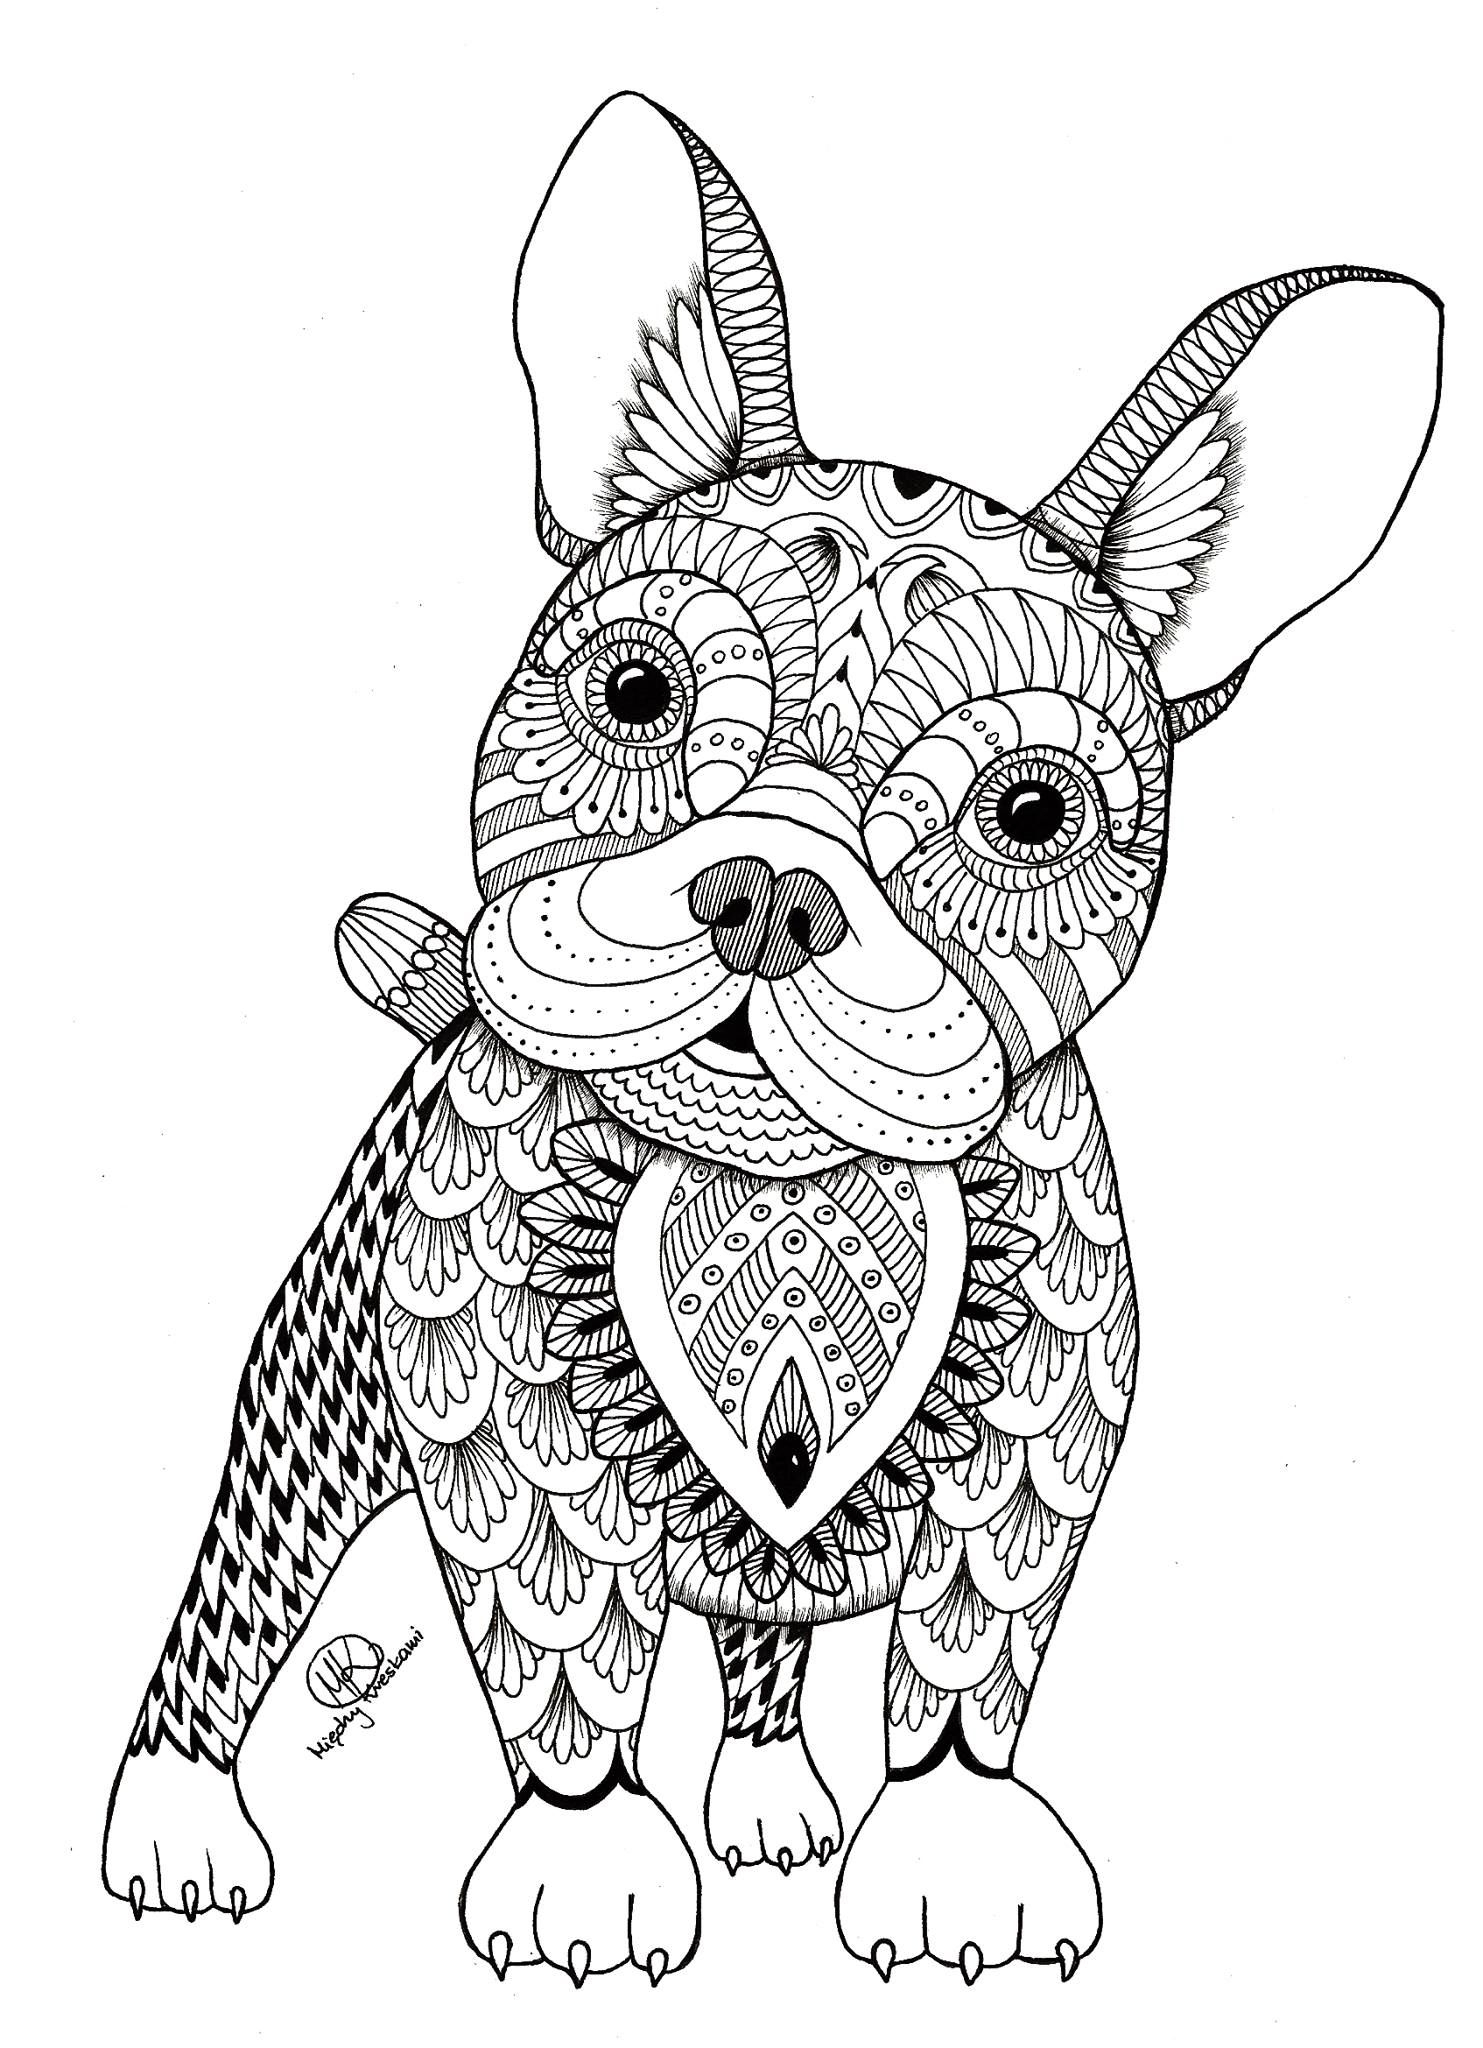 Dog Coloring Pages For Adults Dog Coloring Pages For Adults 43063 Francofest